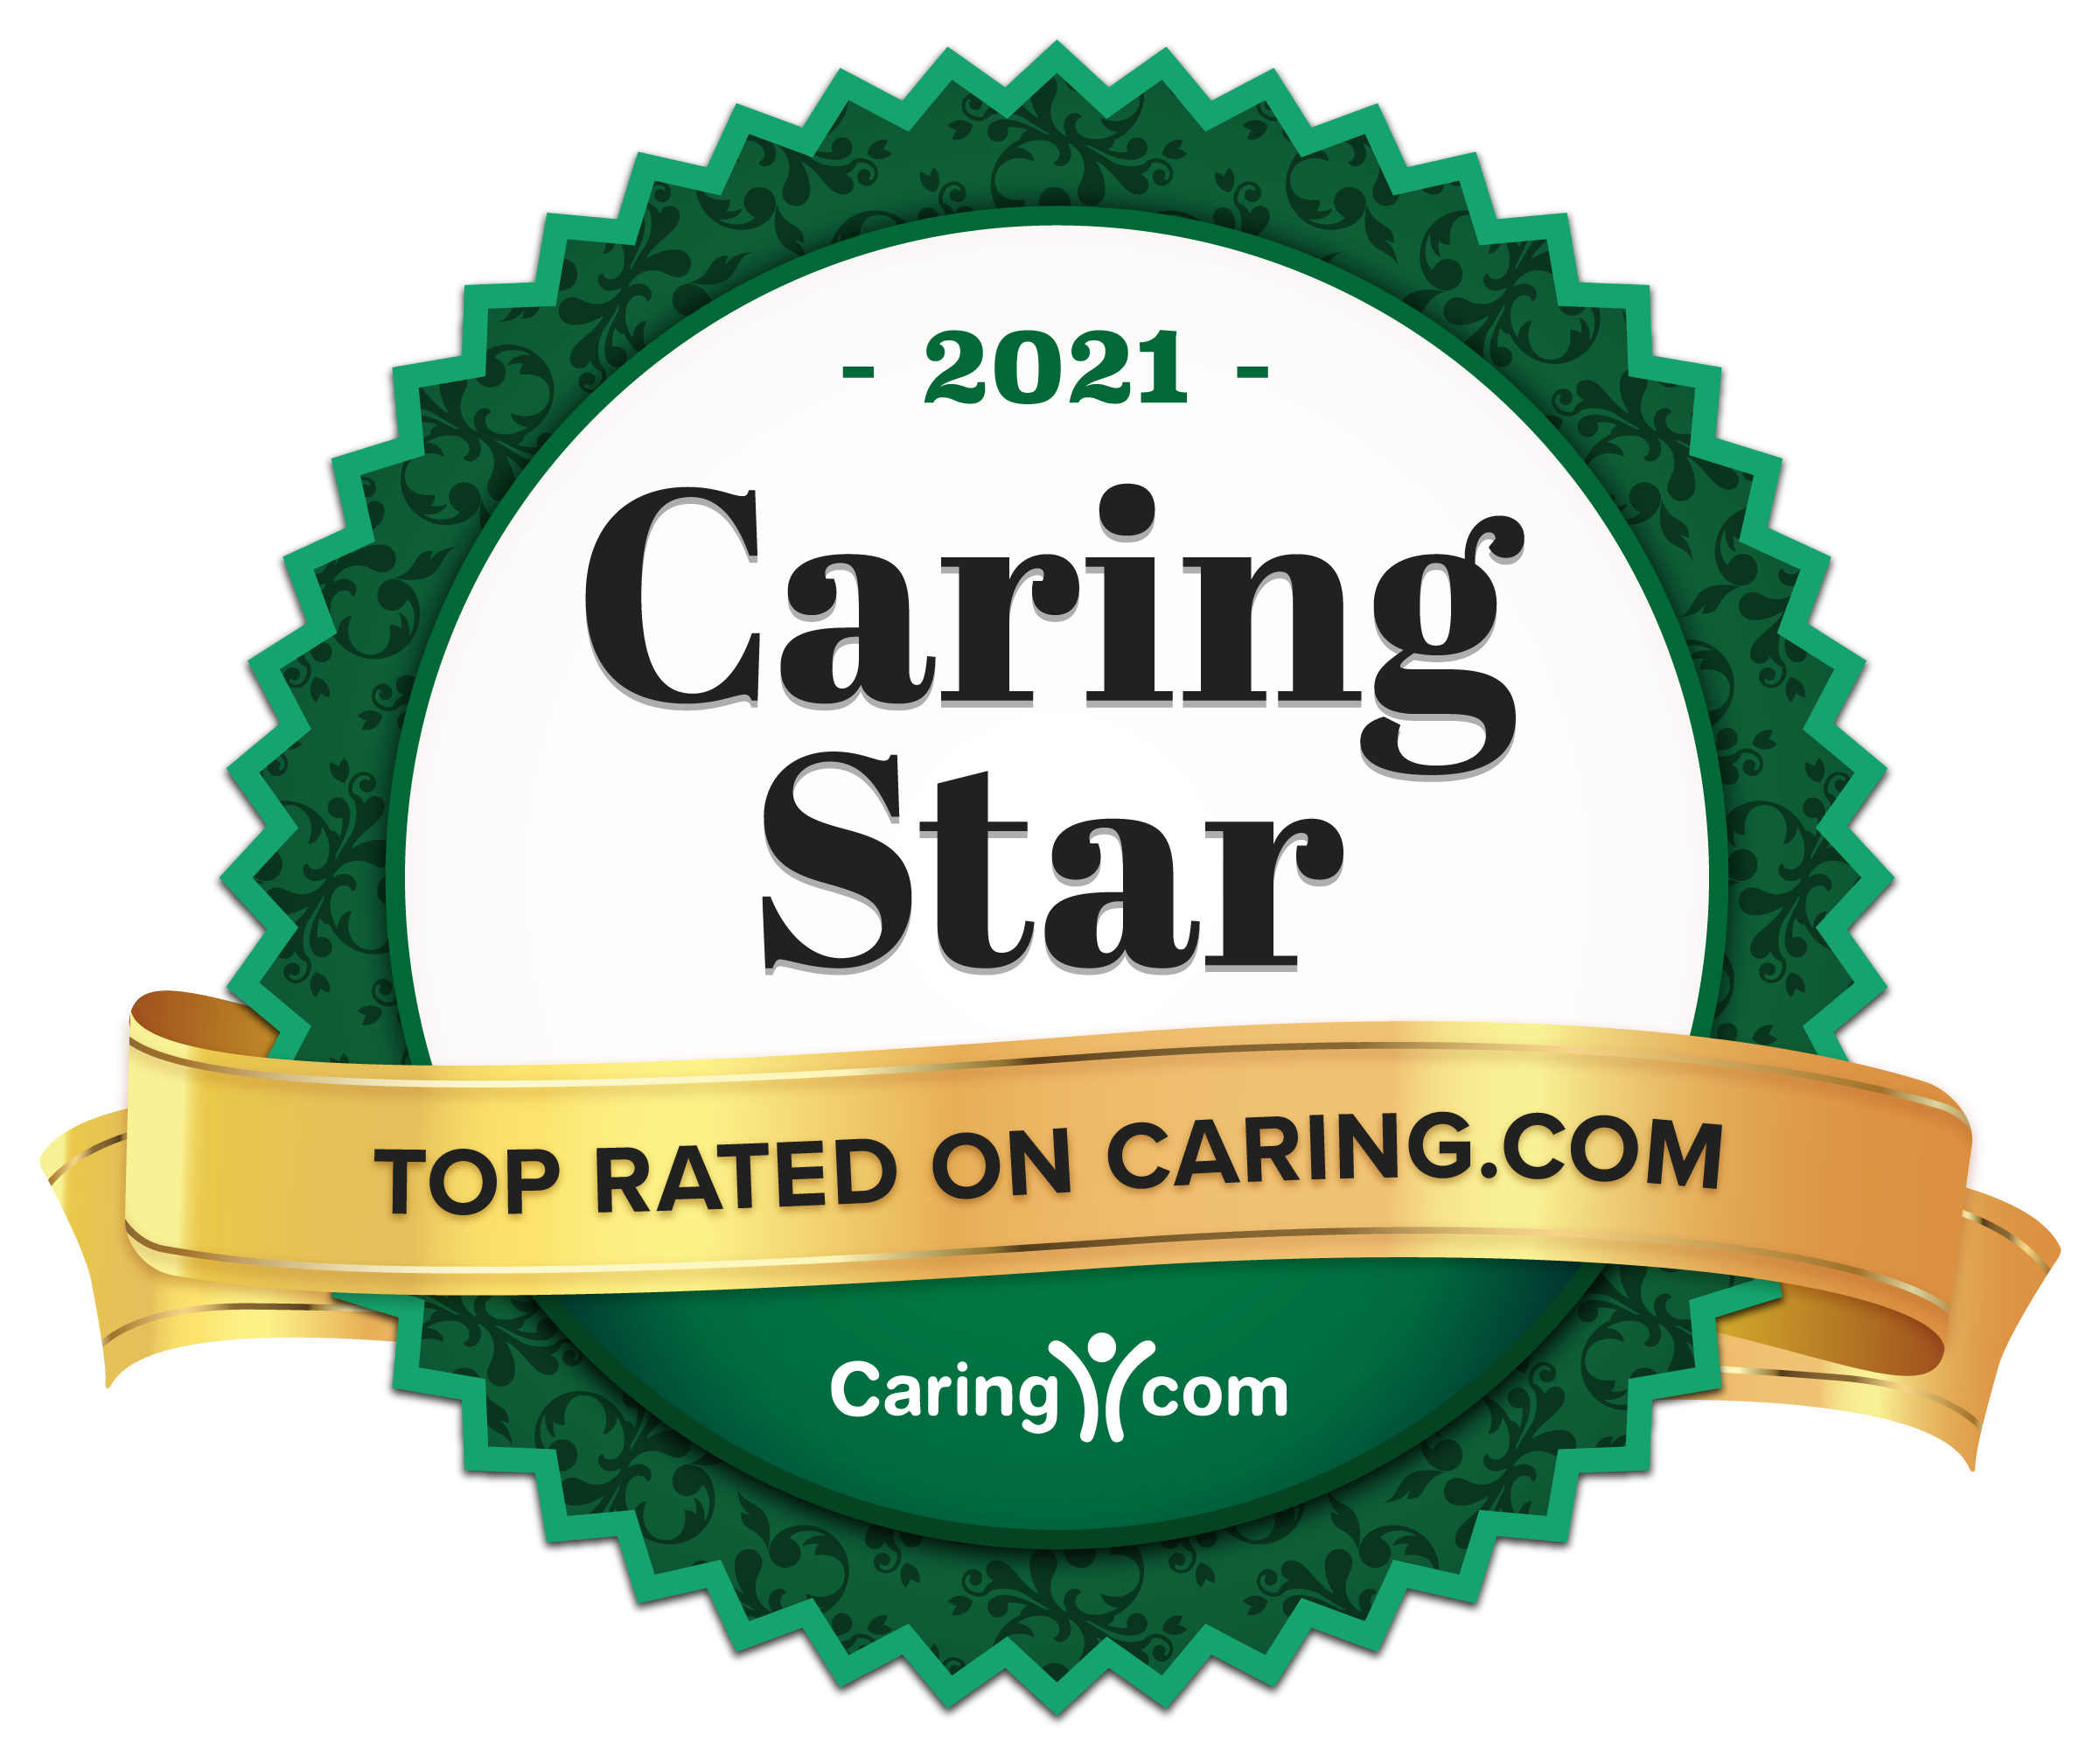 The Park Lane is a Caring.com Caring Star Community for 2021!